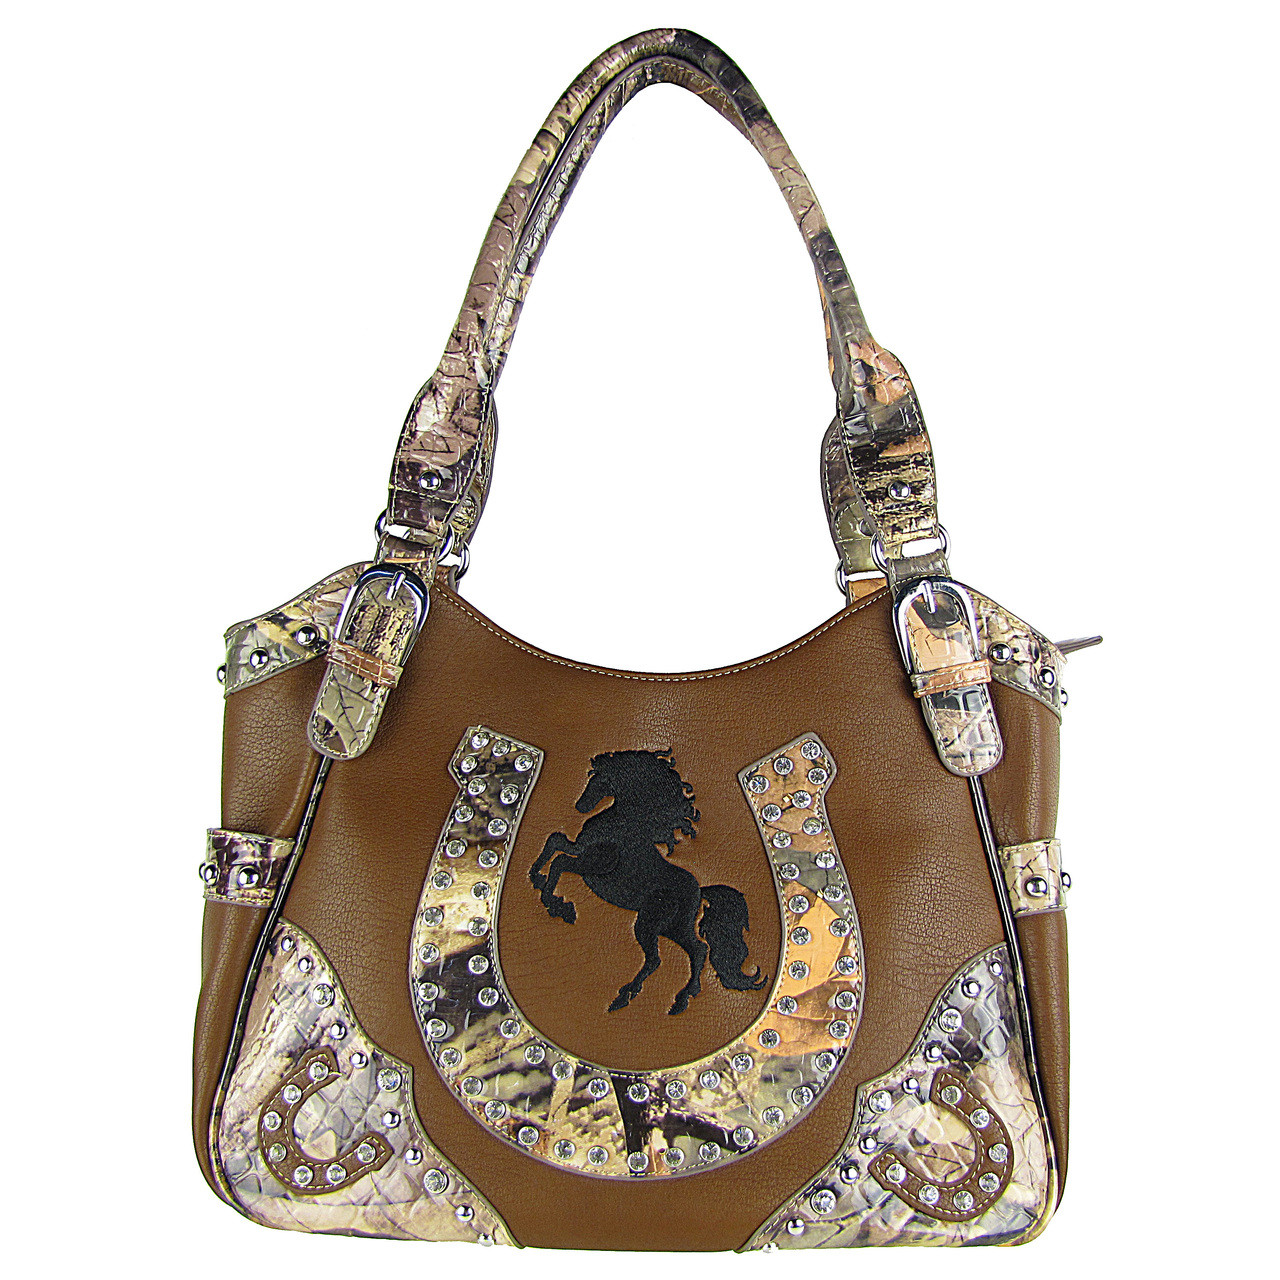 BROWN WESTERN MOSSY CAMO RHINESTONE STUDDED HORSESHOE LOOK SHOULDER HANDBAG HB1-HH392-20BRN